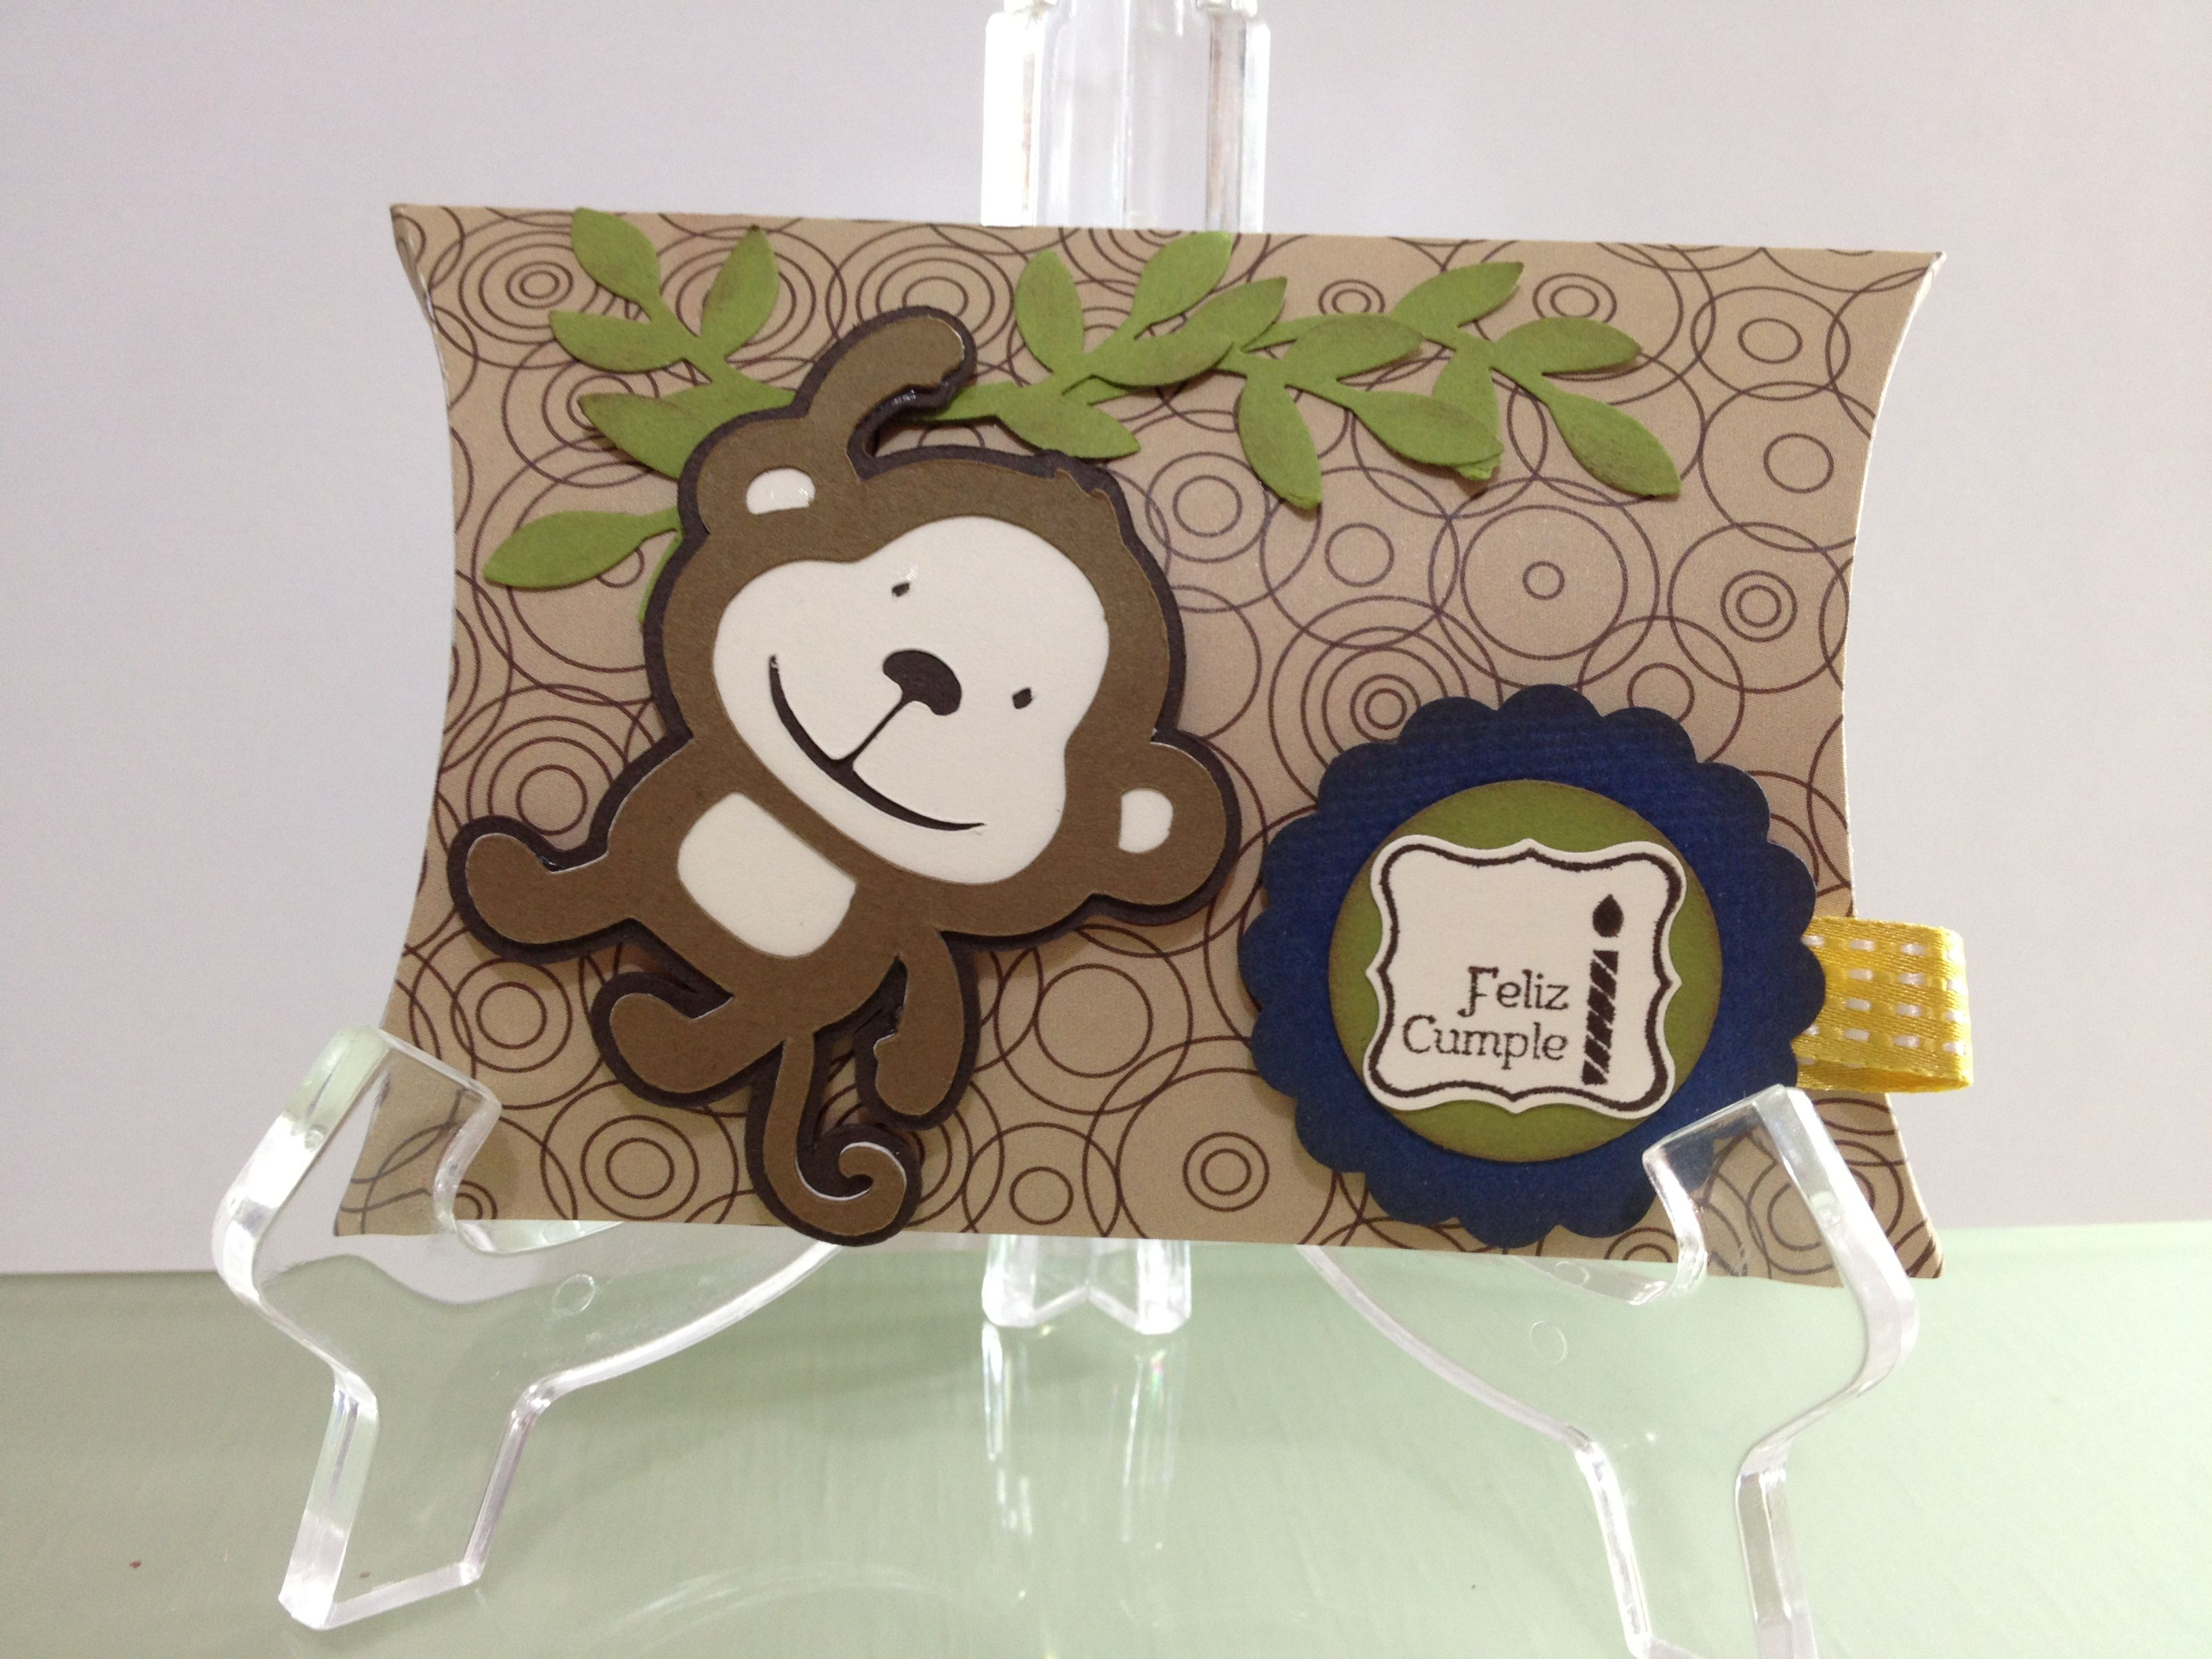 I Use The Cricut Cartdrige Create A Criter And Sizzix Die Pillow Box Of Tim Holtz